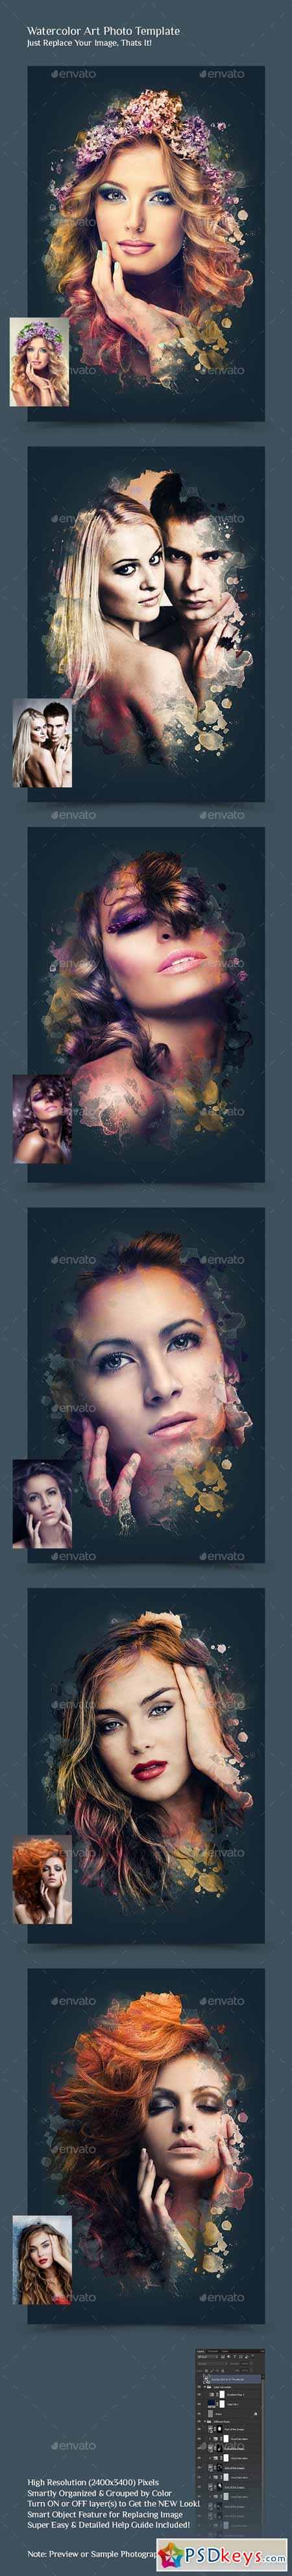 Graphicriver Typoframe Art 10432393